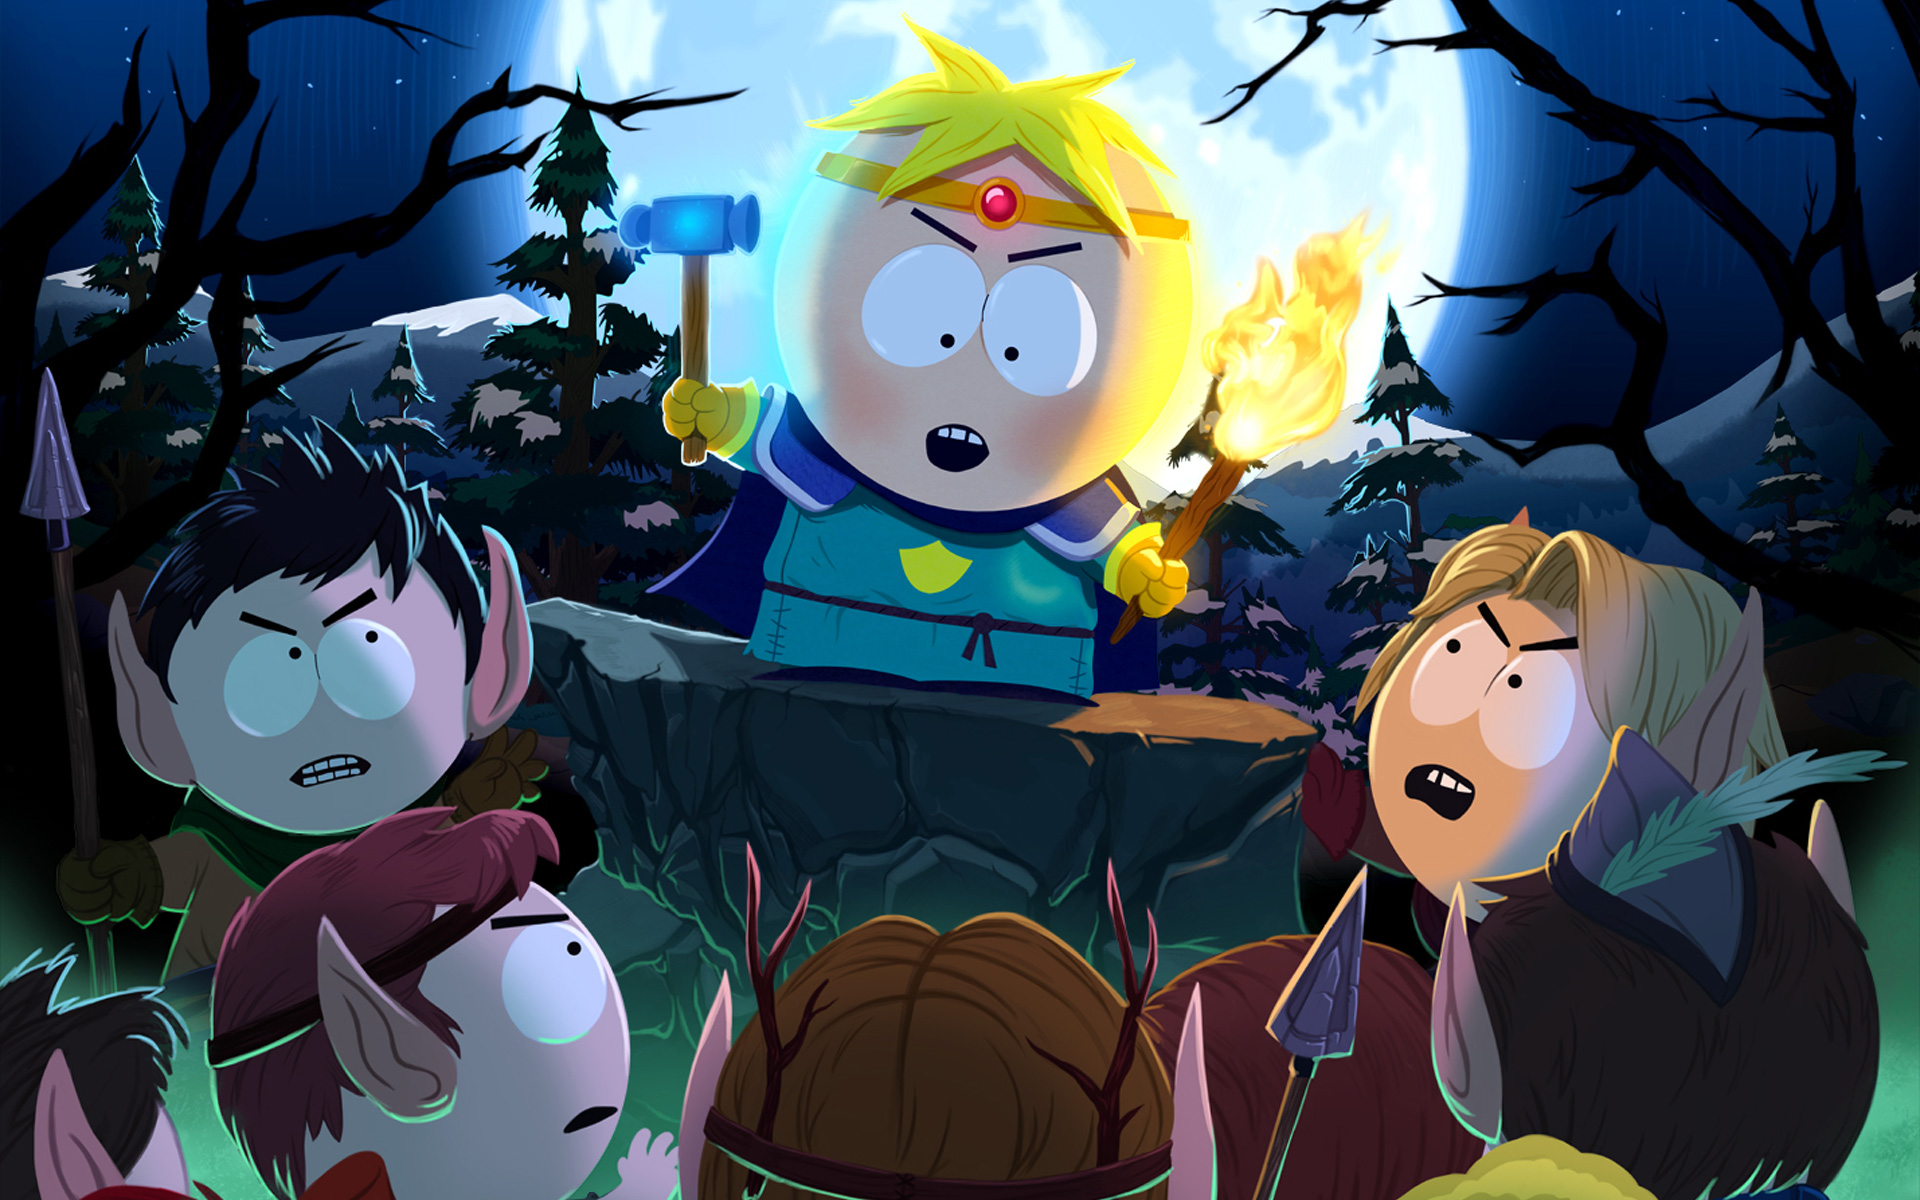 South Park: The Stick of Truth Wallpaper in 1920x1200